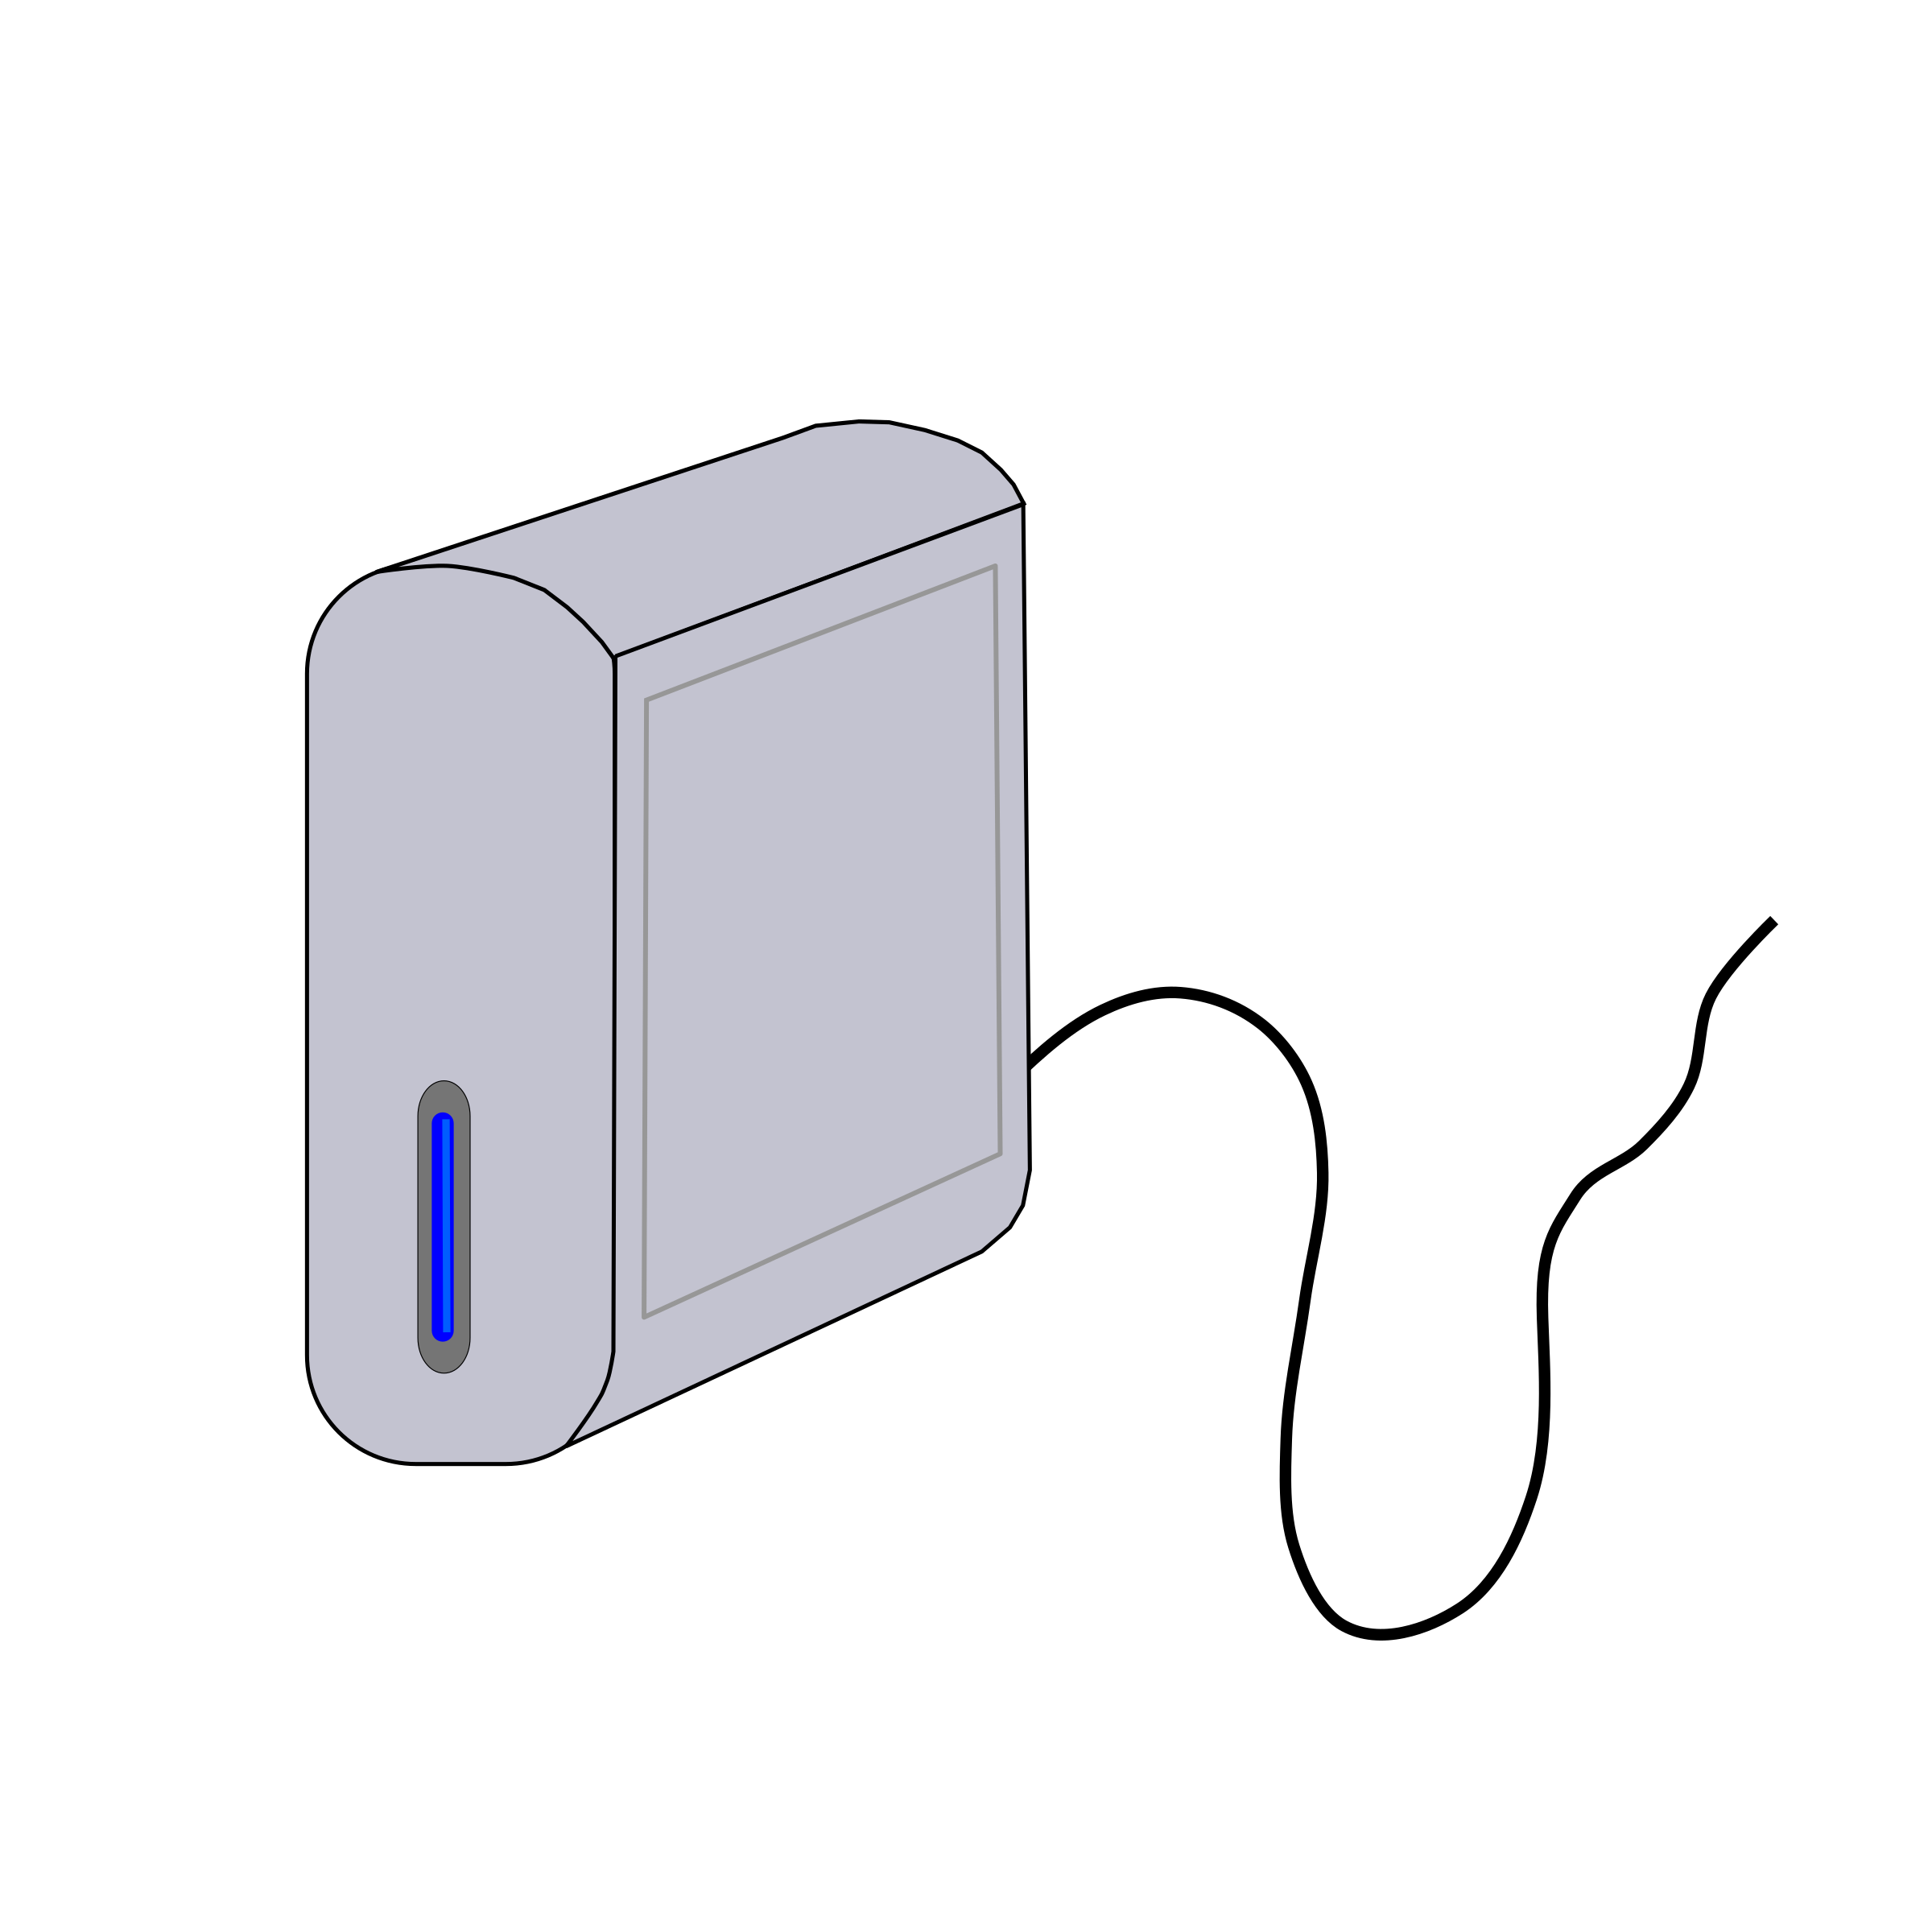 External Hard Drive by s9393